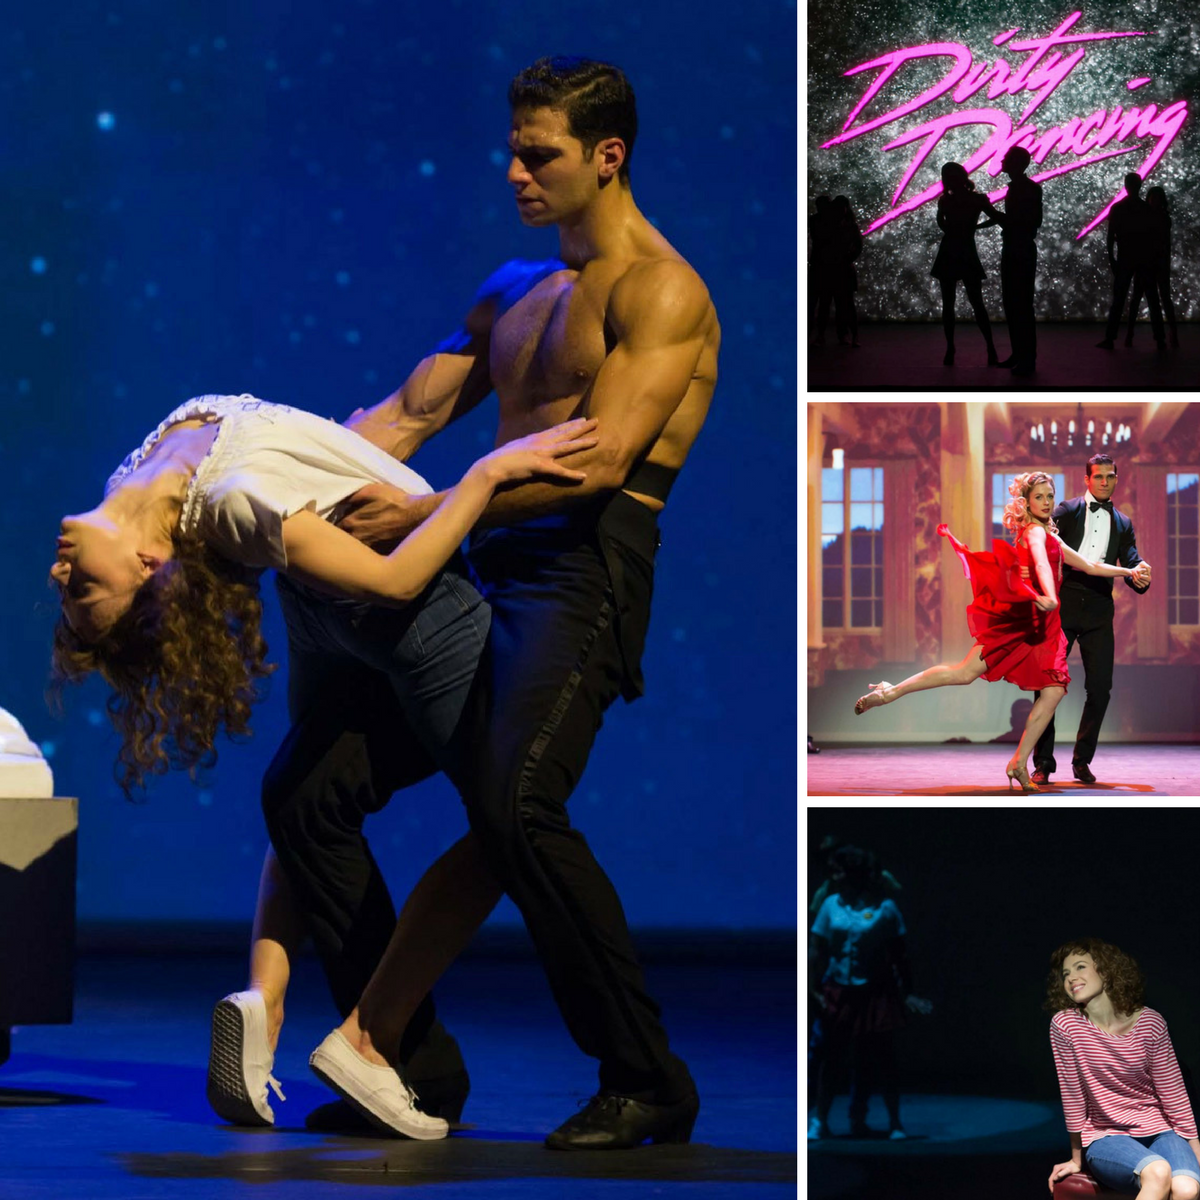 spectacle-dirty-dancing-film-comedie-musicale-france